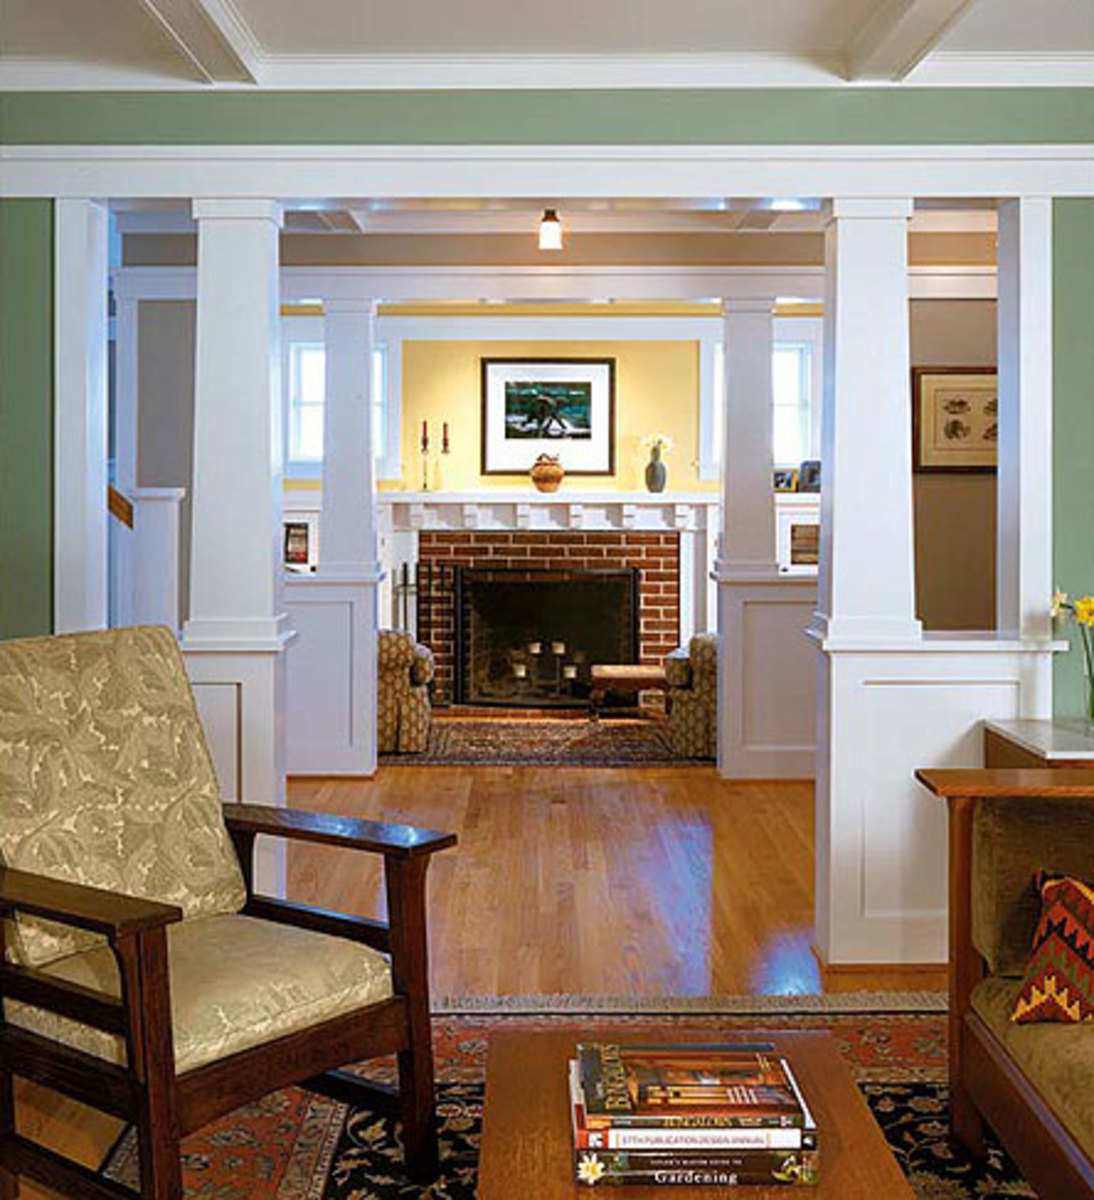 Woodwork & Finishes for the Craftsman Home - Arts & Crafts Homes